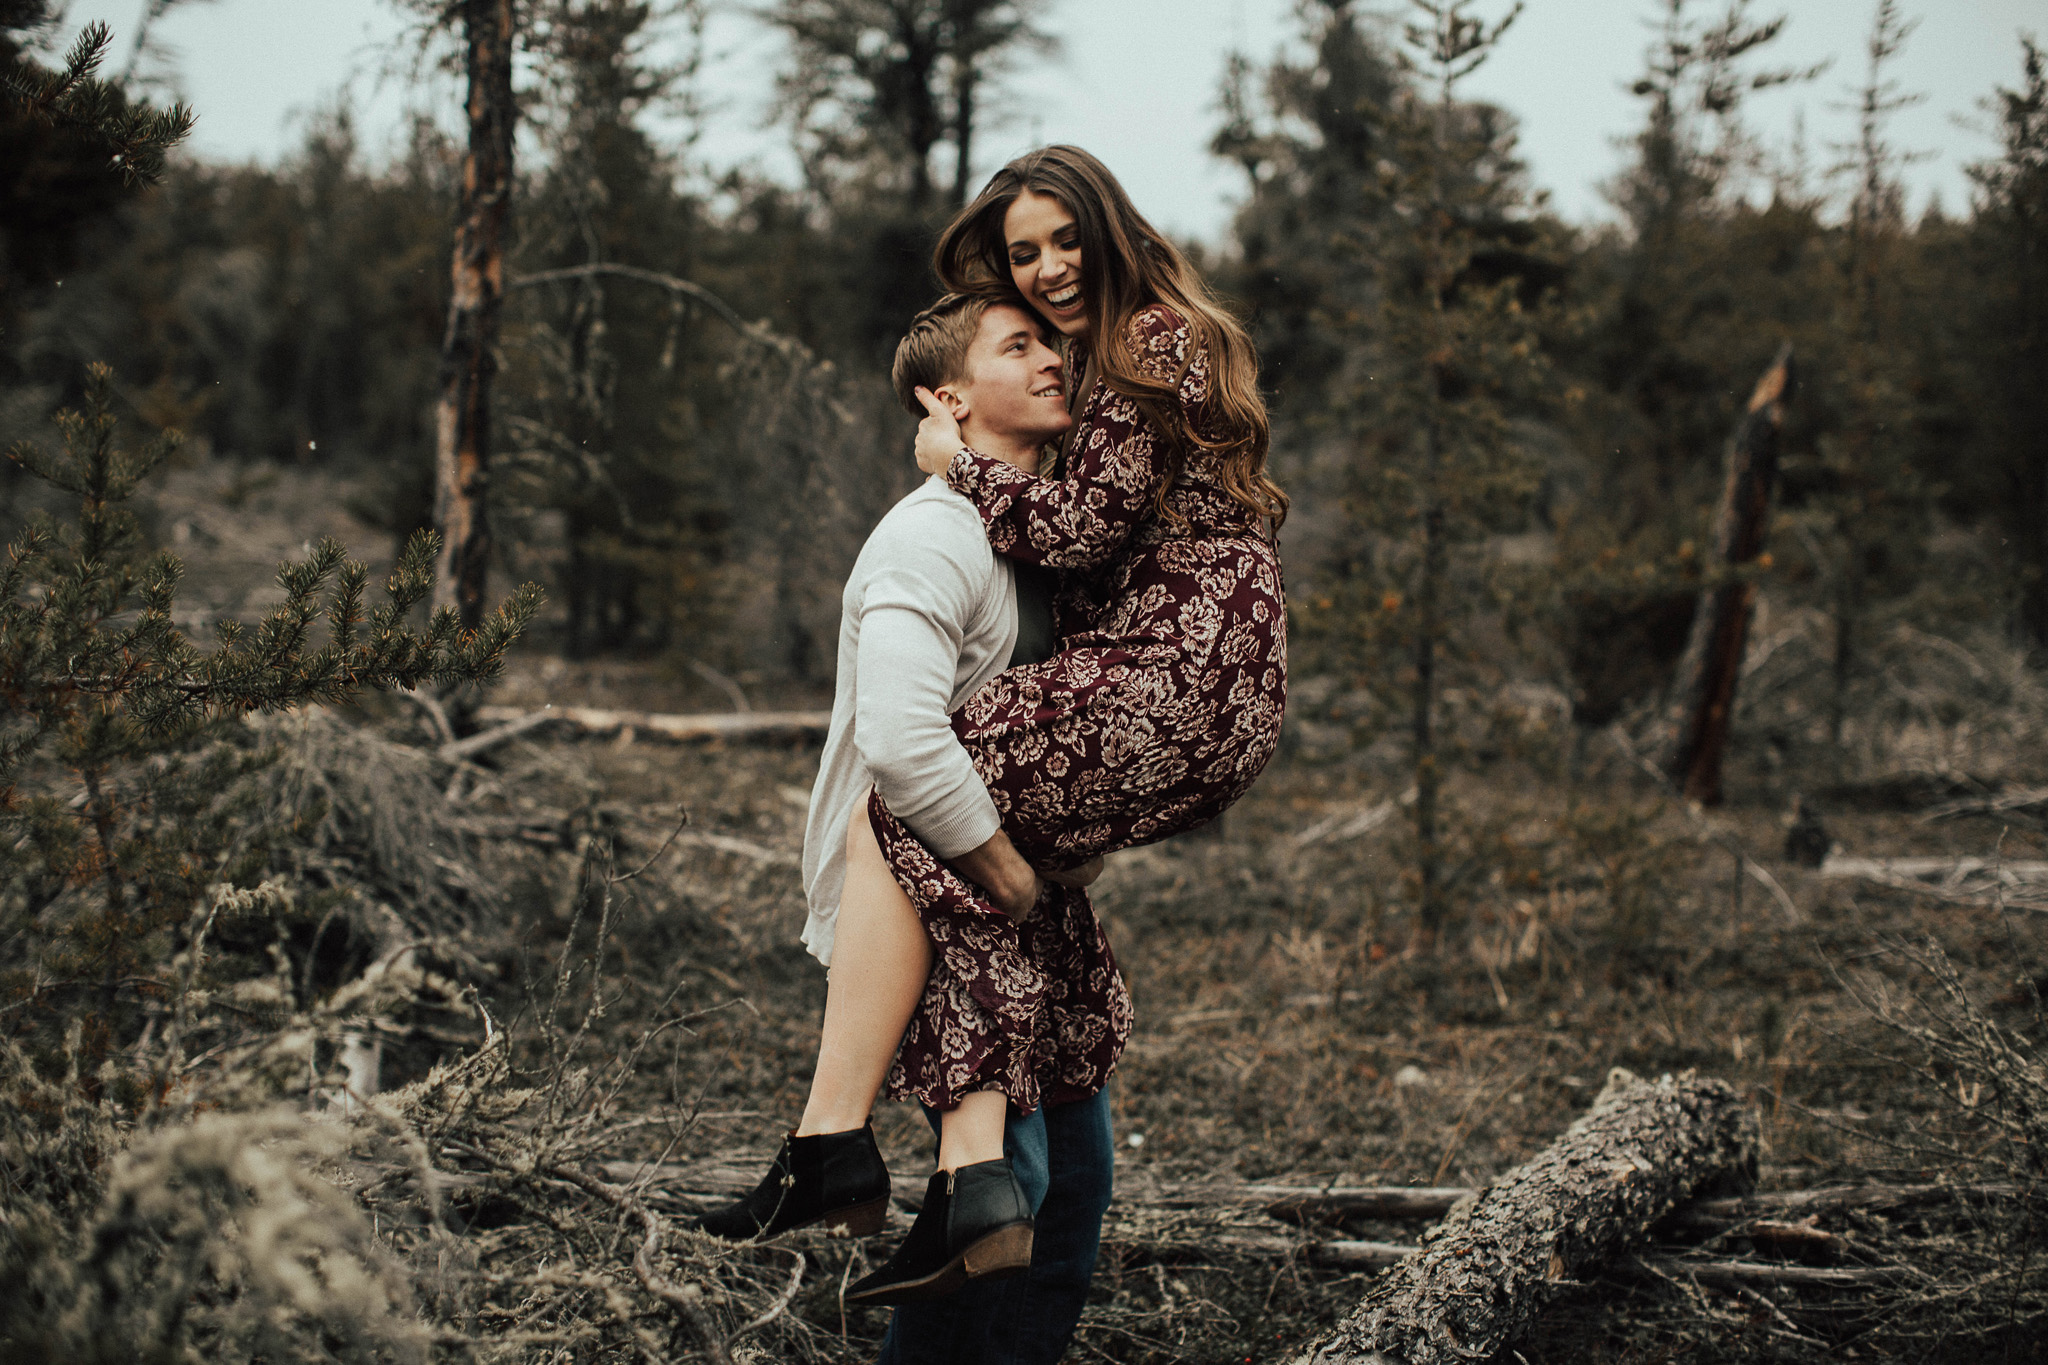 Edmonton Engagement Photographer - Michelle Larmand Photography - Mossy woods engagement session049